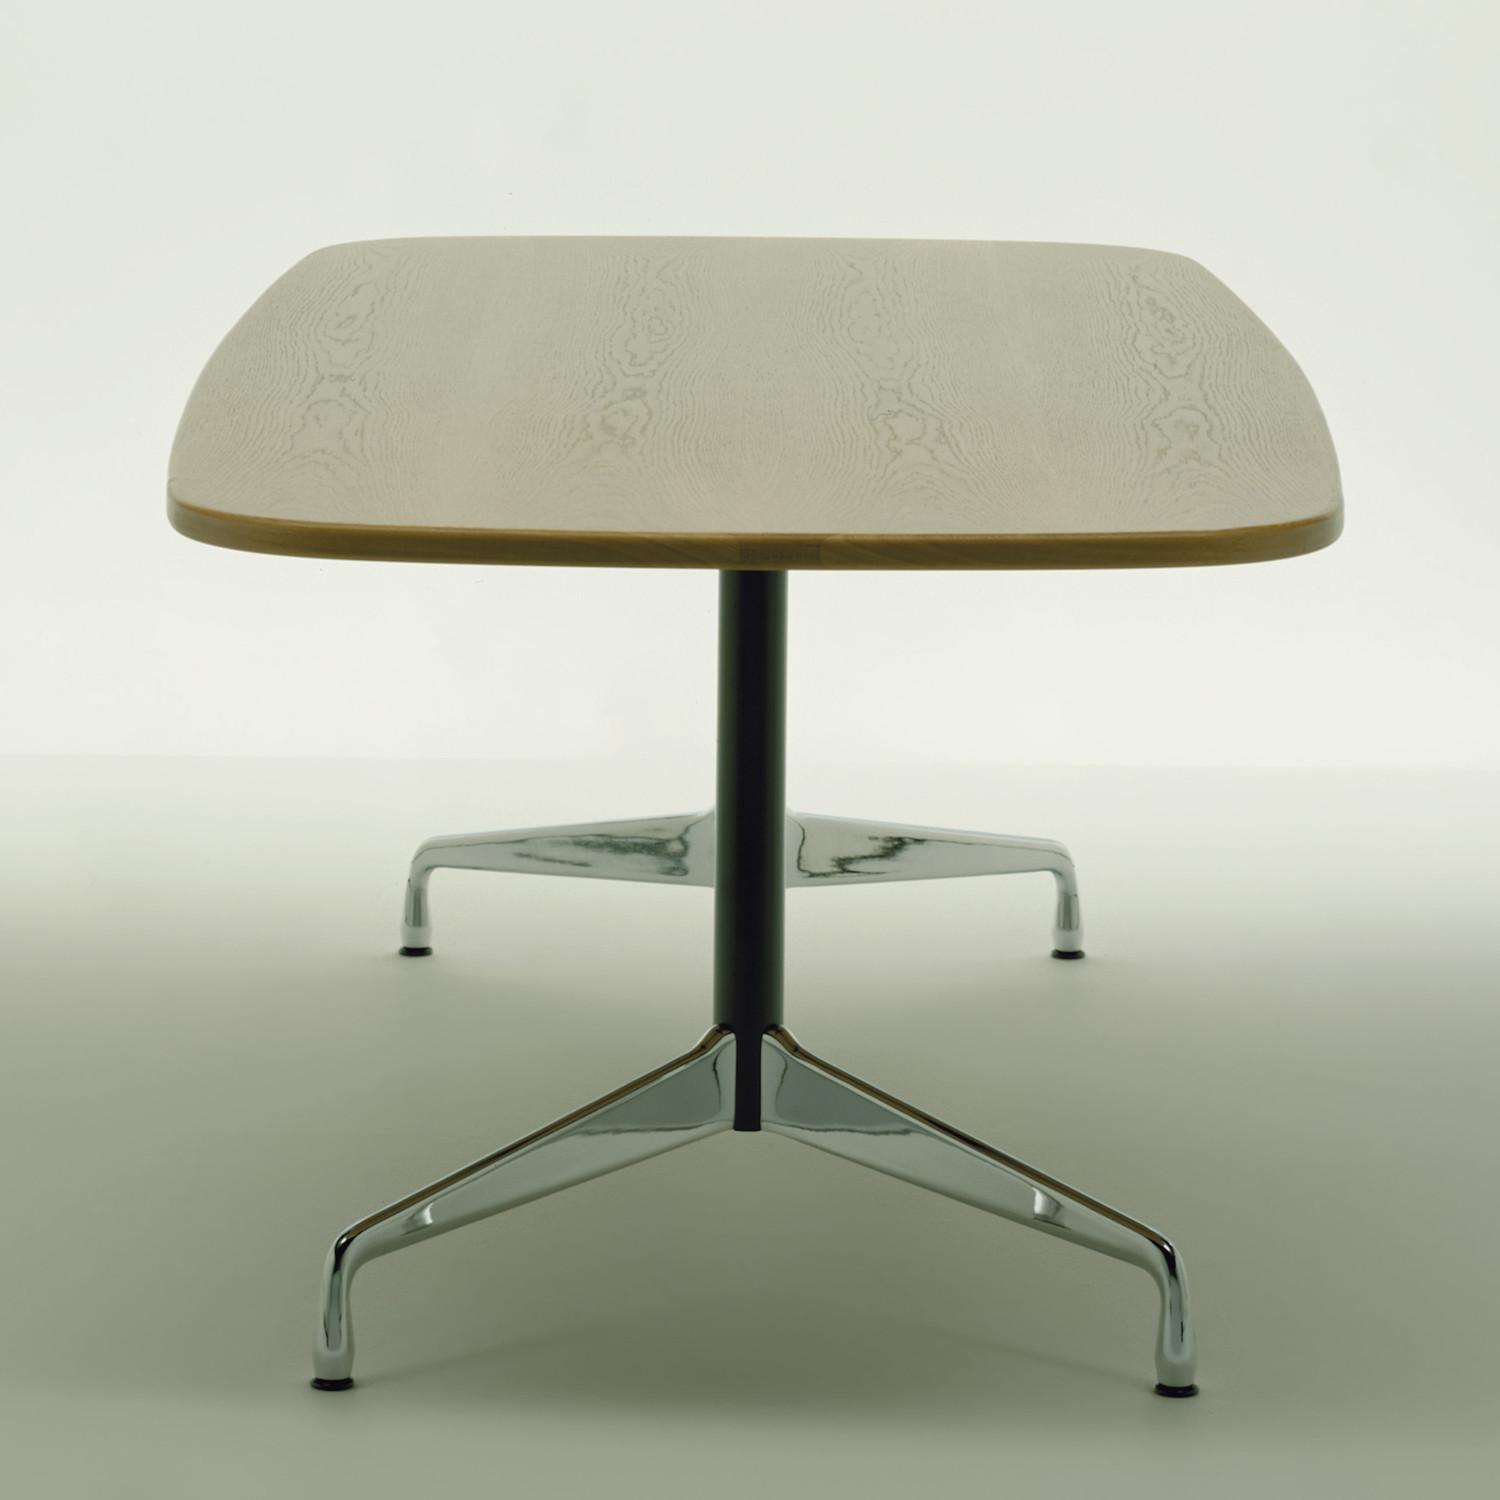 Eames Conference Table by Vitra